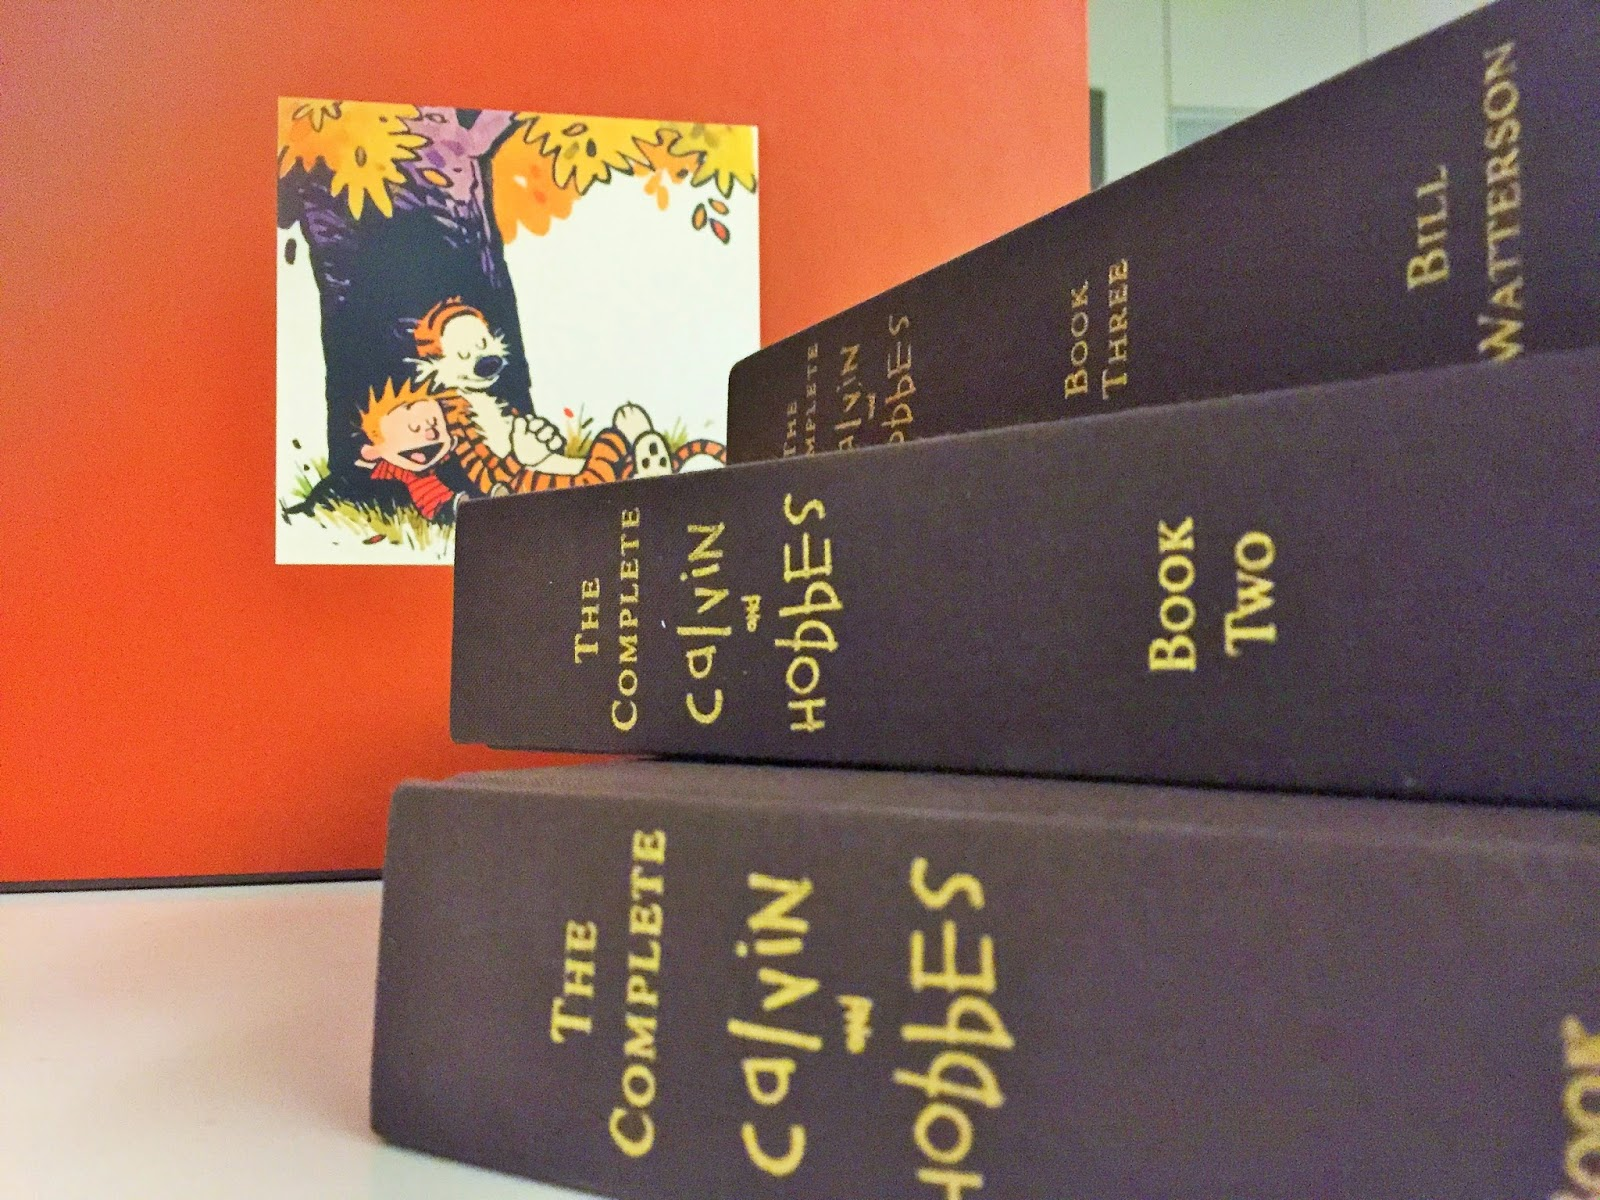 Bill Watterson - The Complete Calvin and Hobbes First Edition